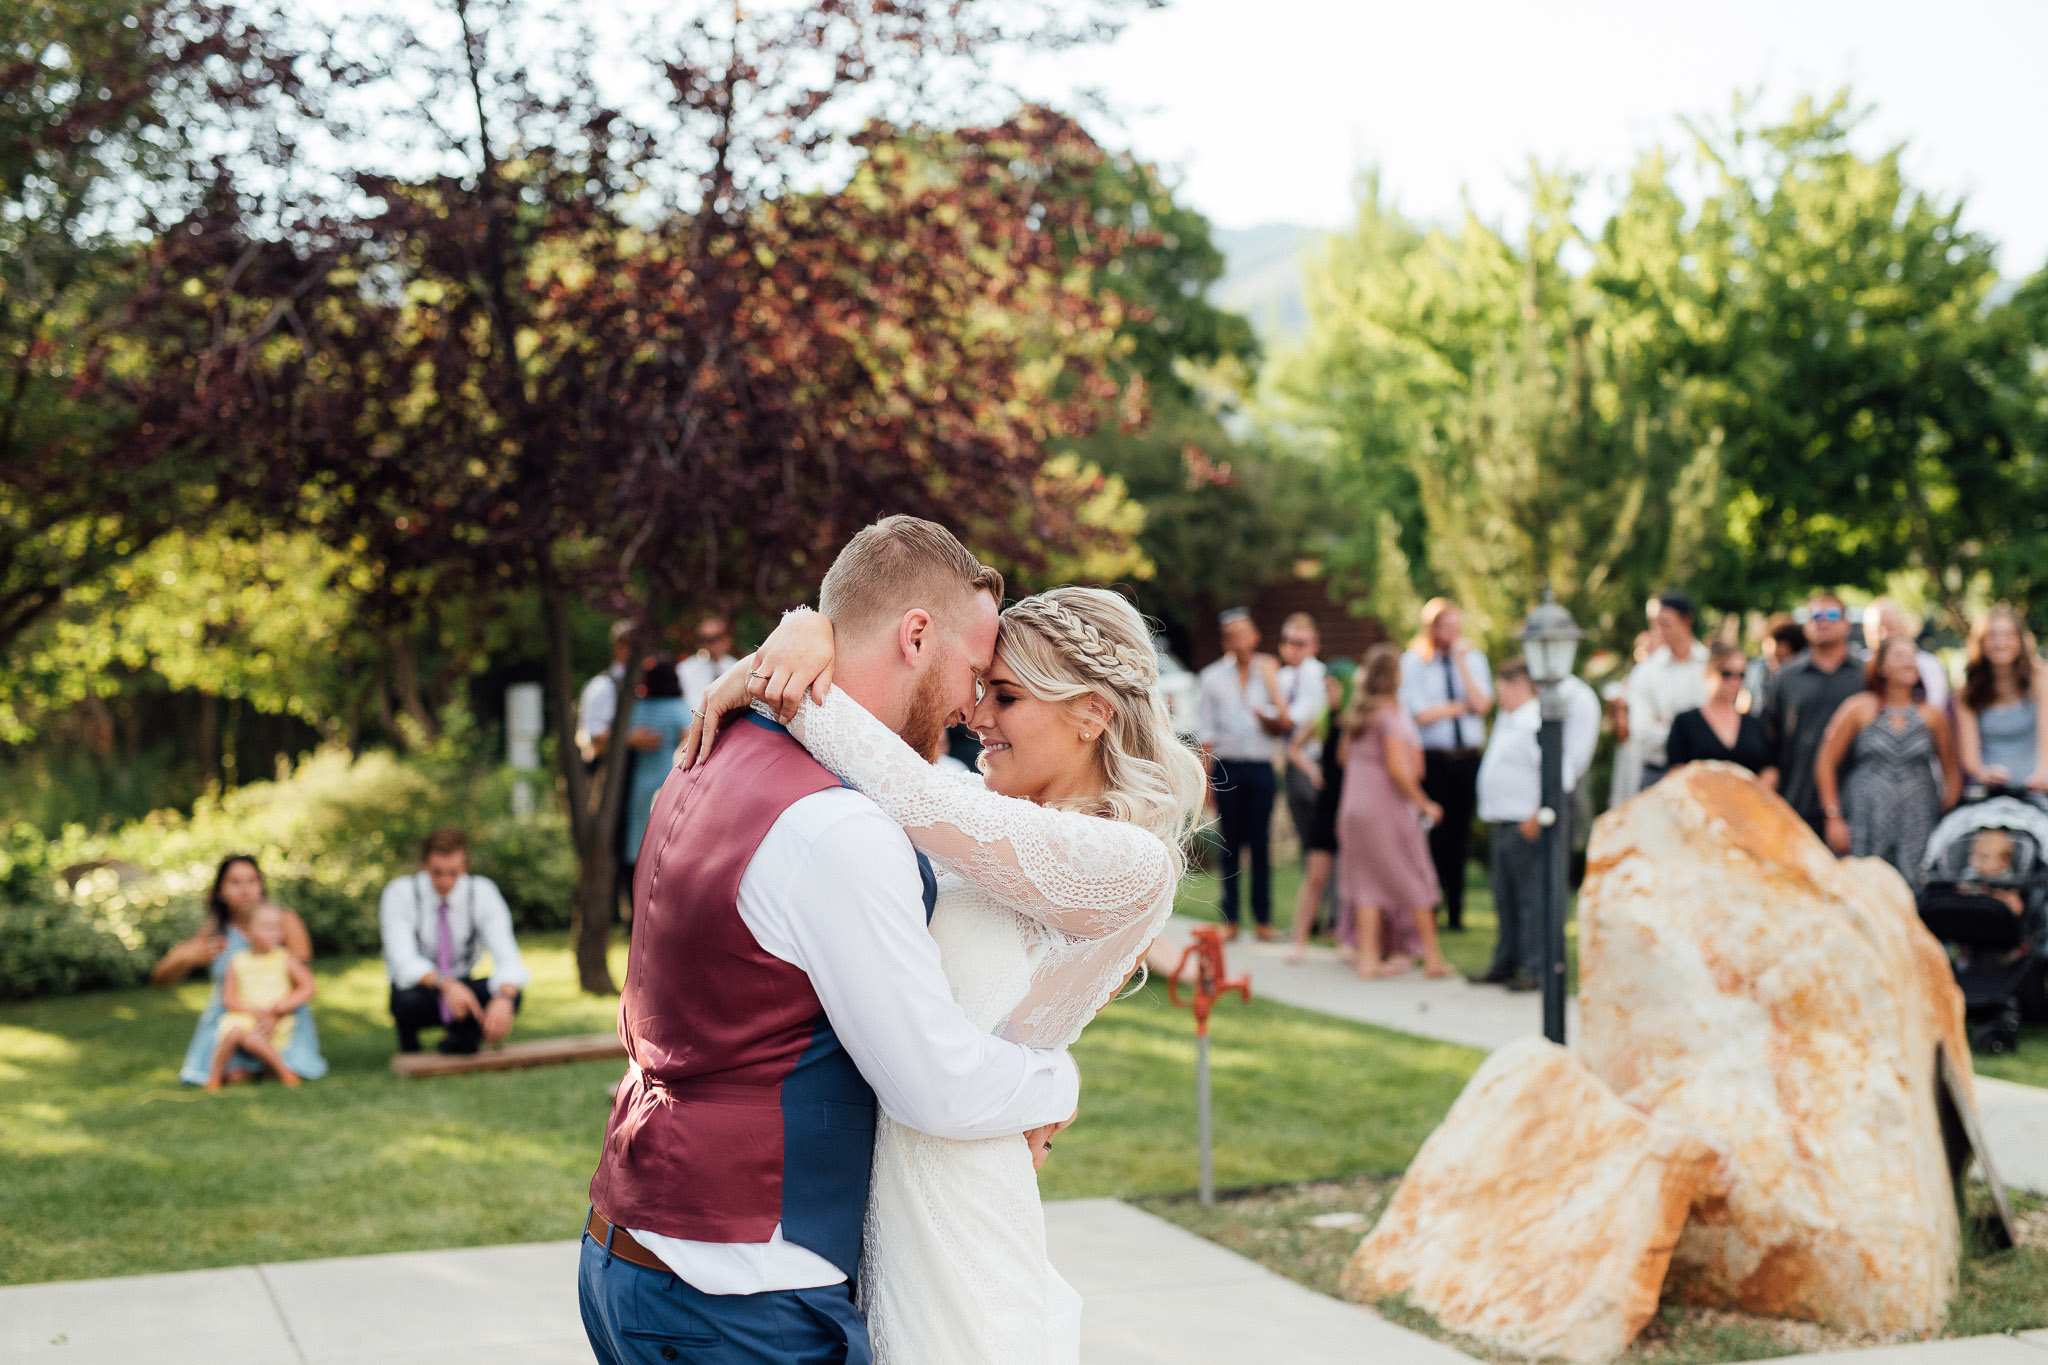 Bride and groom dance during wedding reception